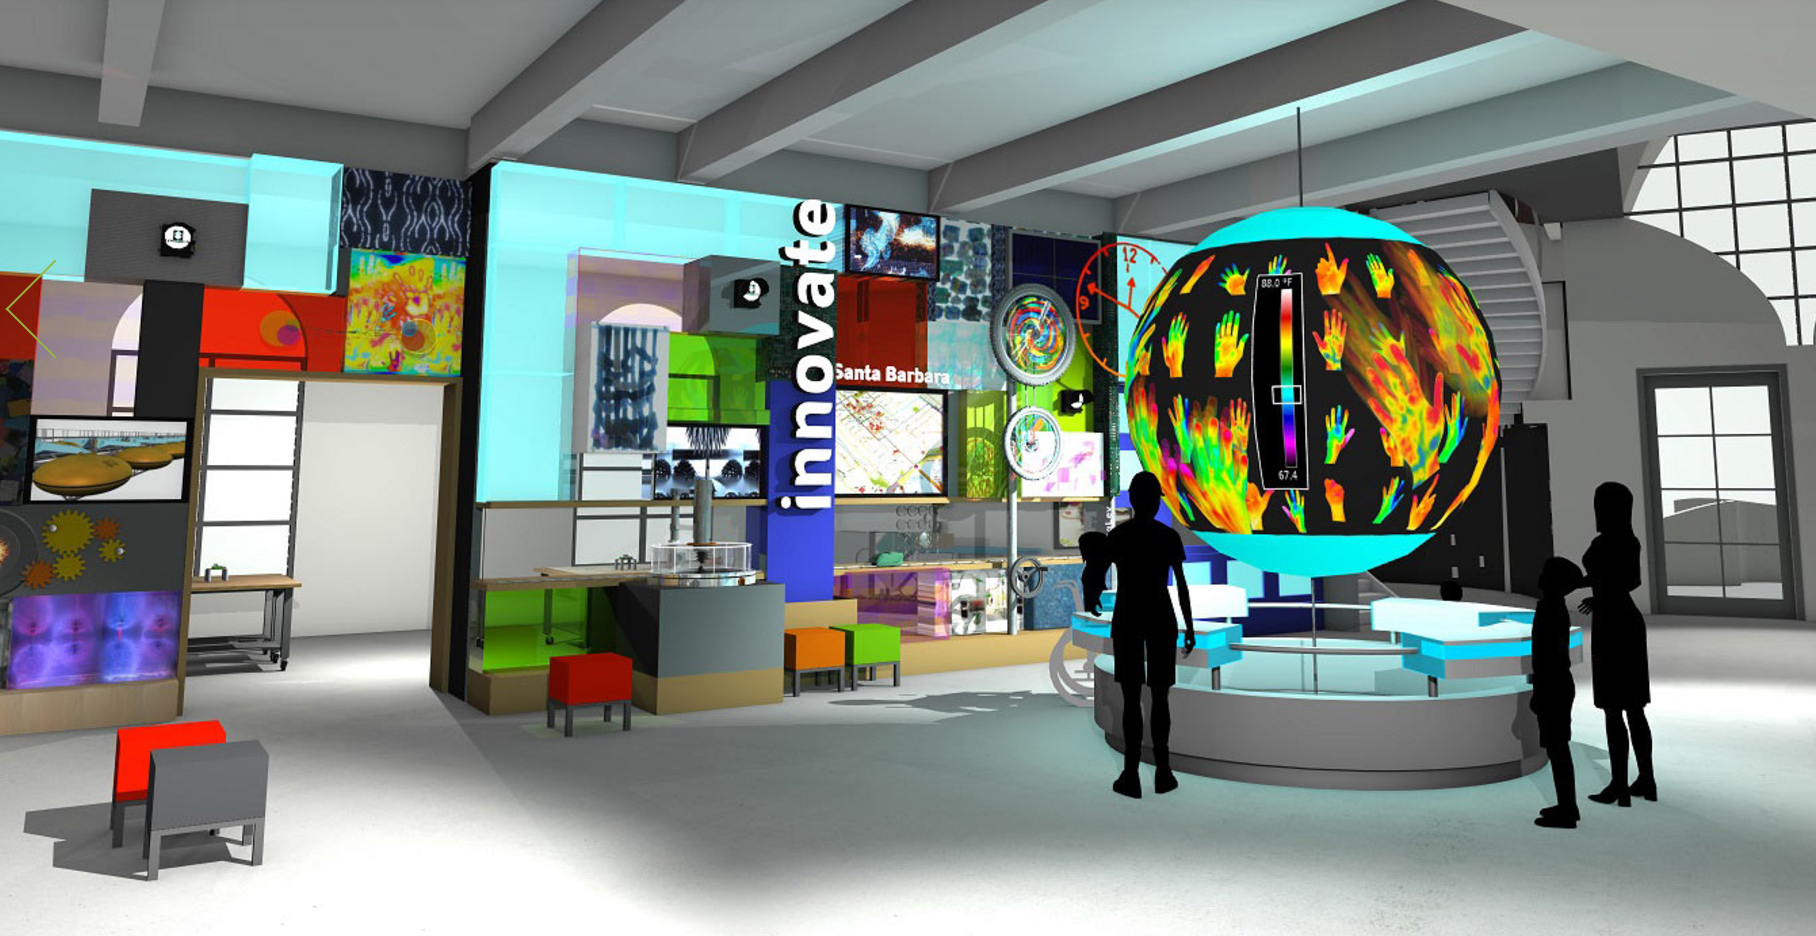 Image :: Exhibits by Moxi - The Wolf Museum of Exploration and Innovation